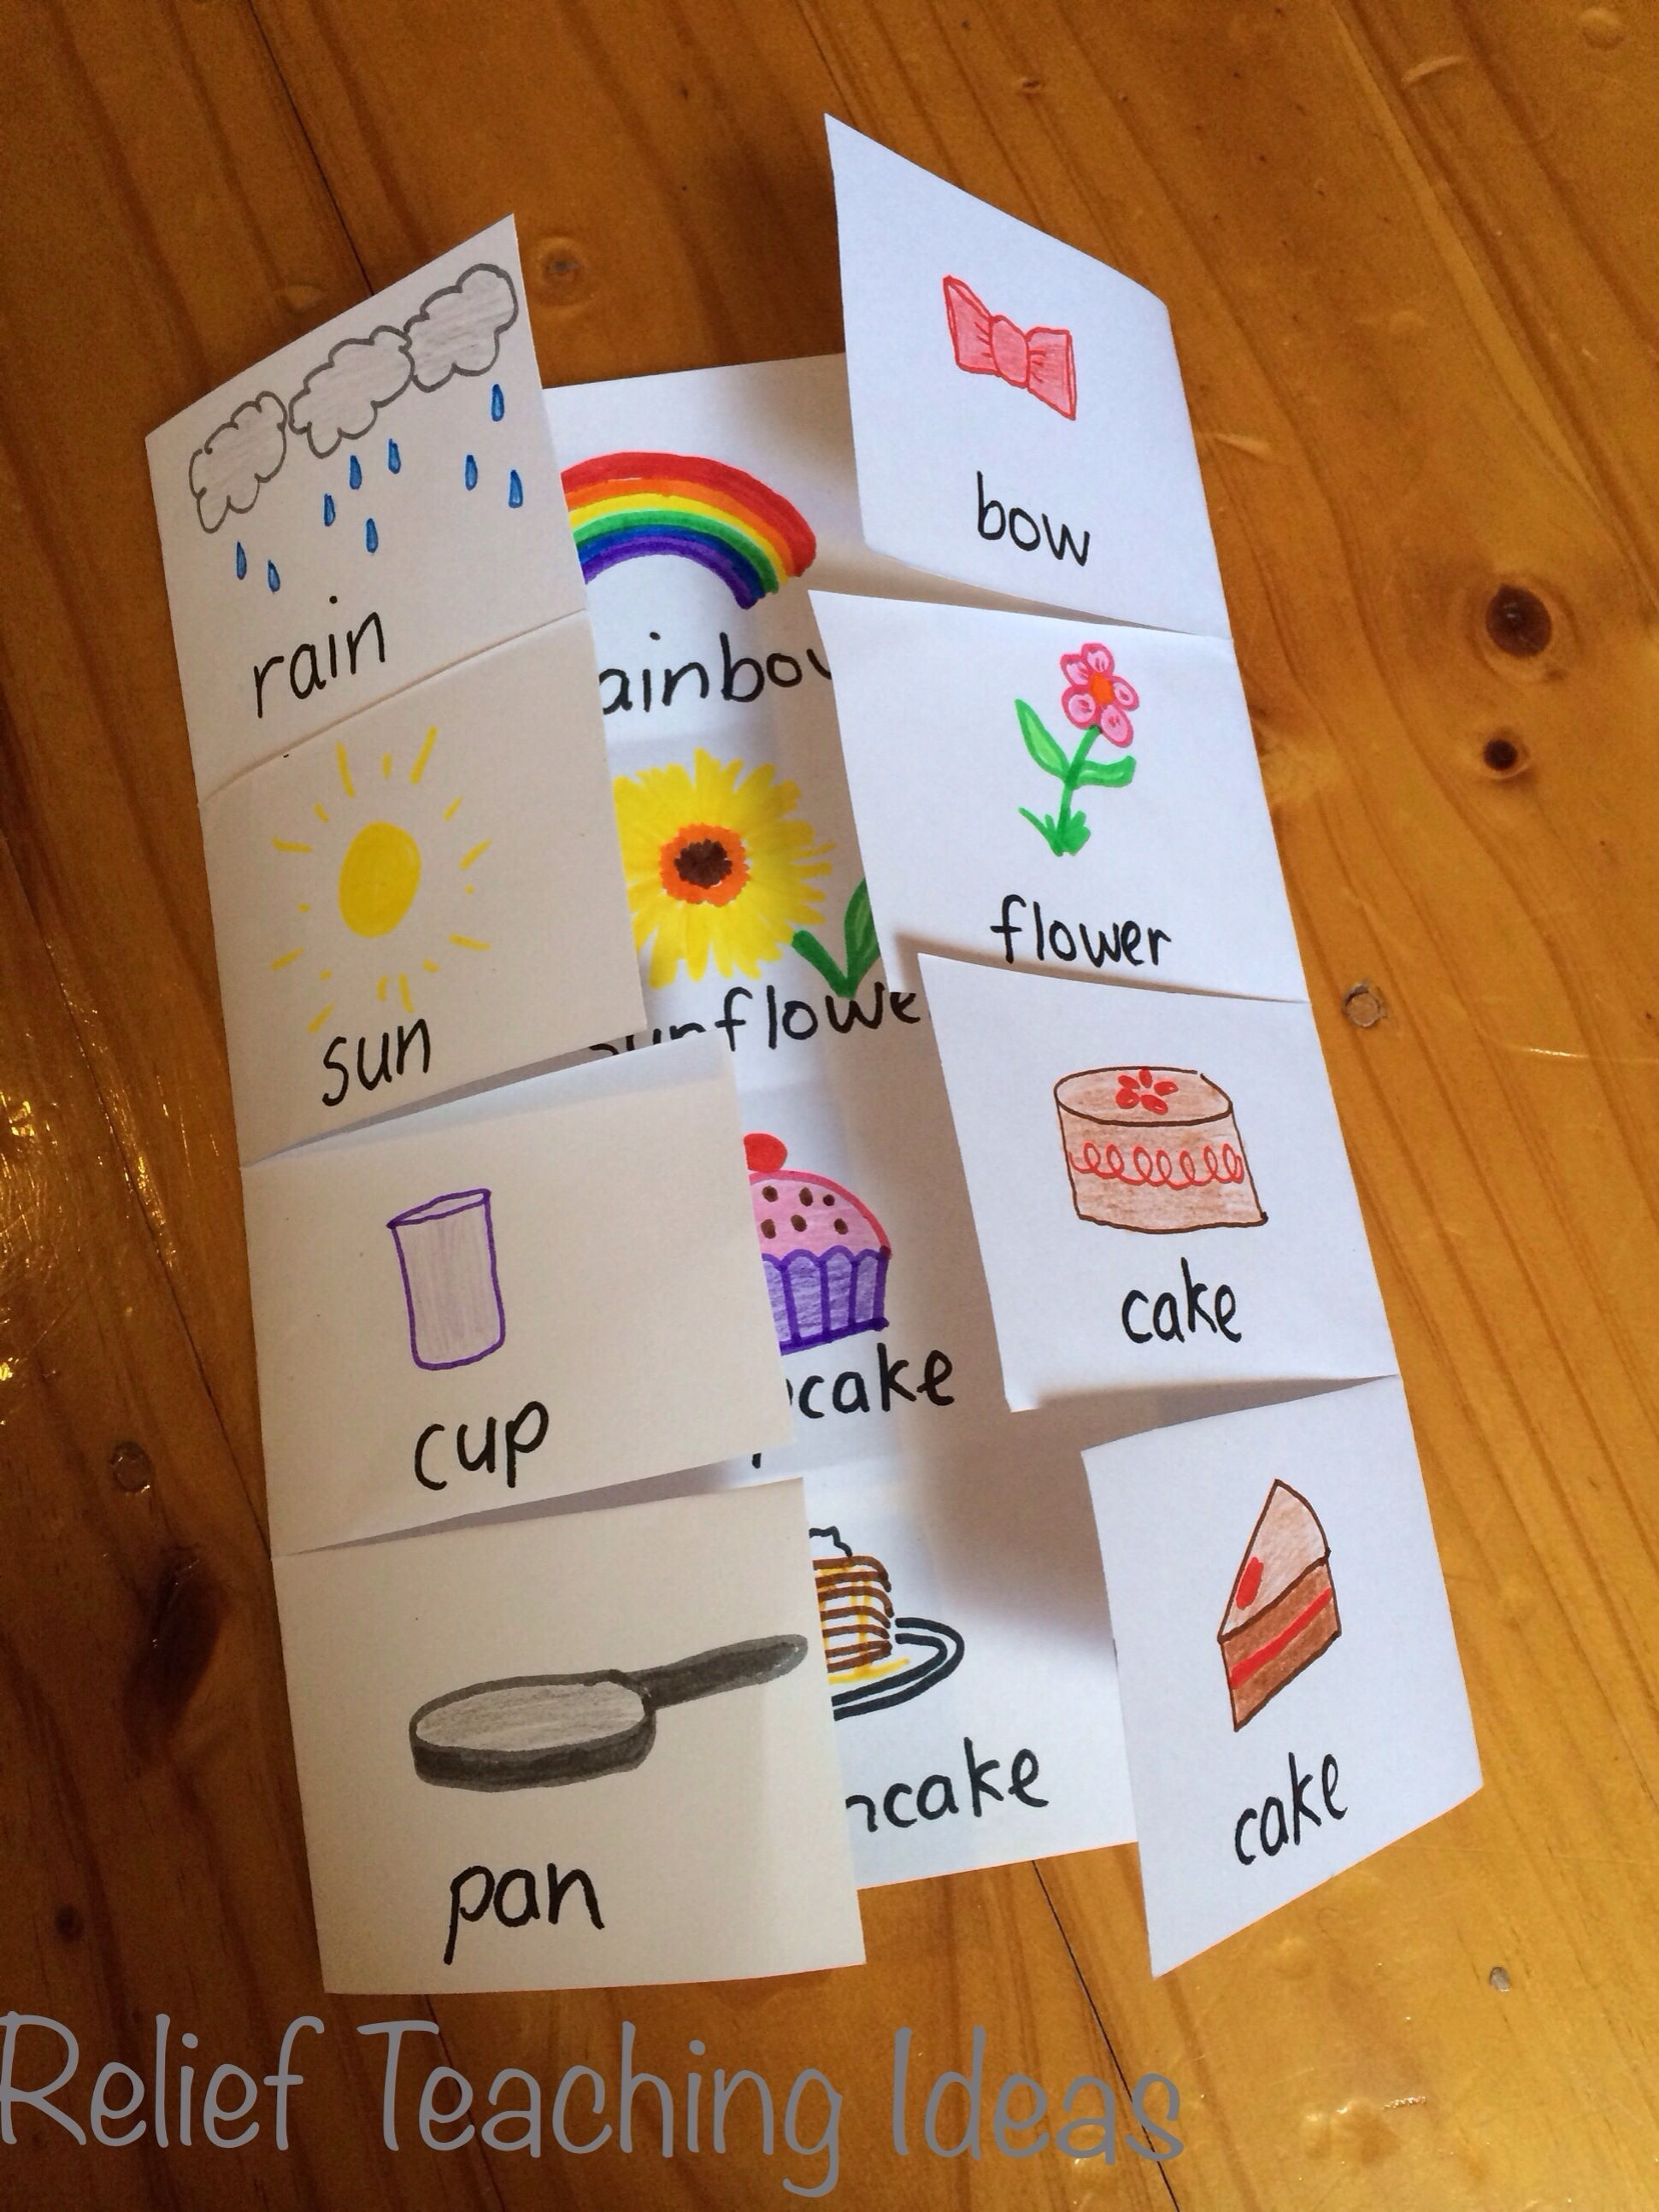 Illustrate Foldables Compound Children Foldable Compound Compound Booklet Really Making Think Would Relief Teaching Ideas Compound Words Teaching [ 2588 x 1941 Pixel ]